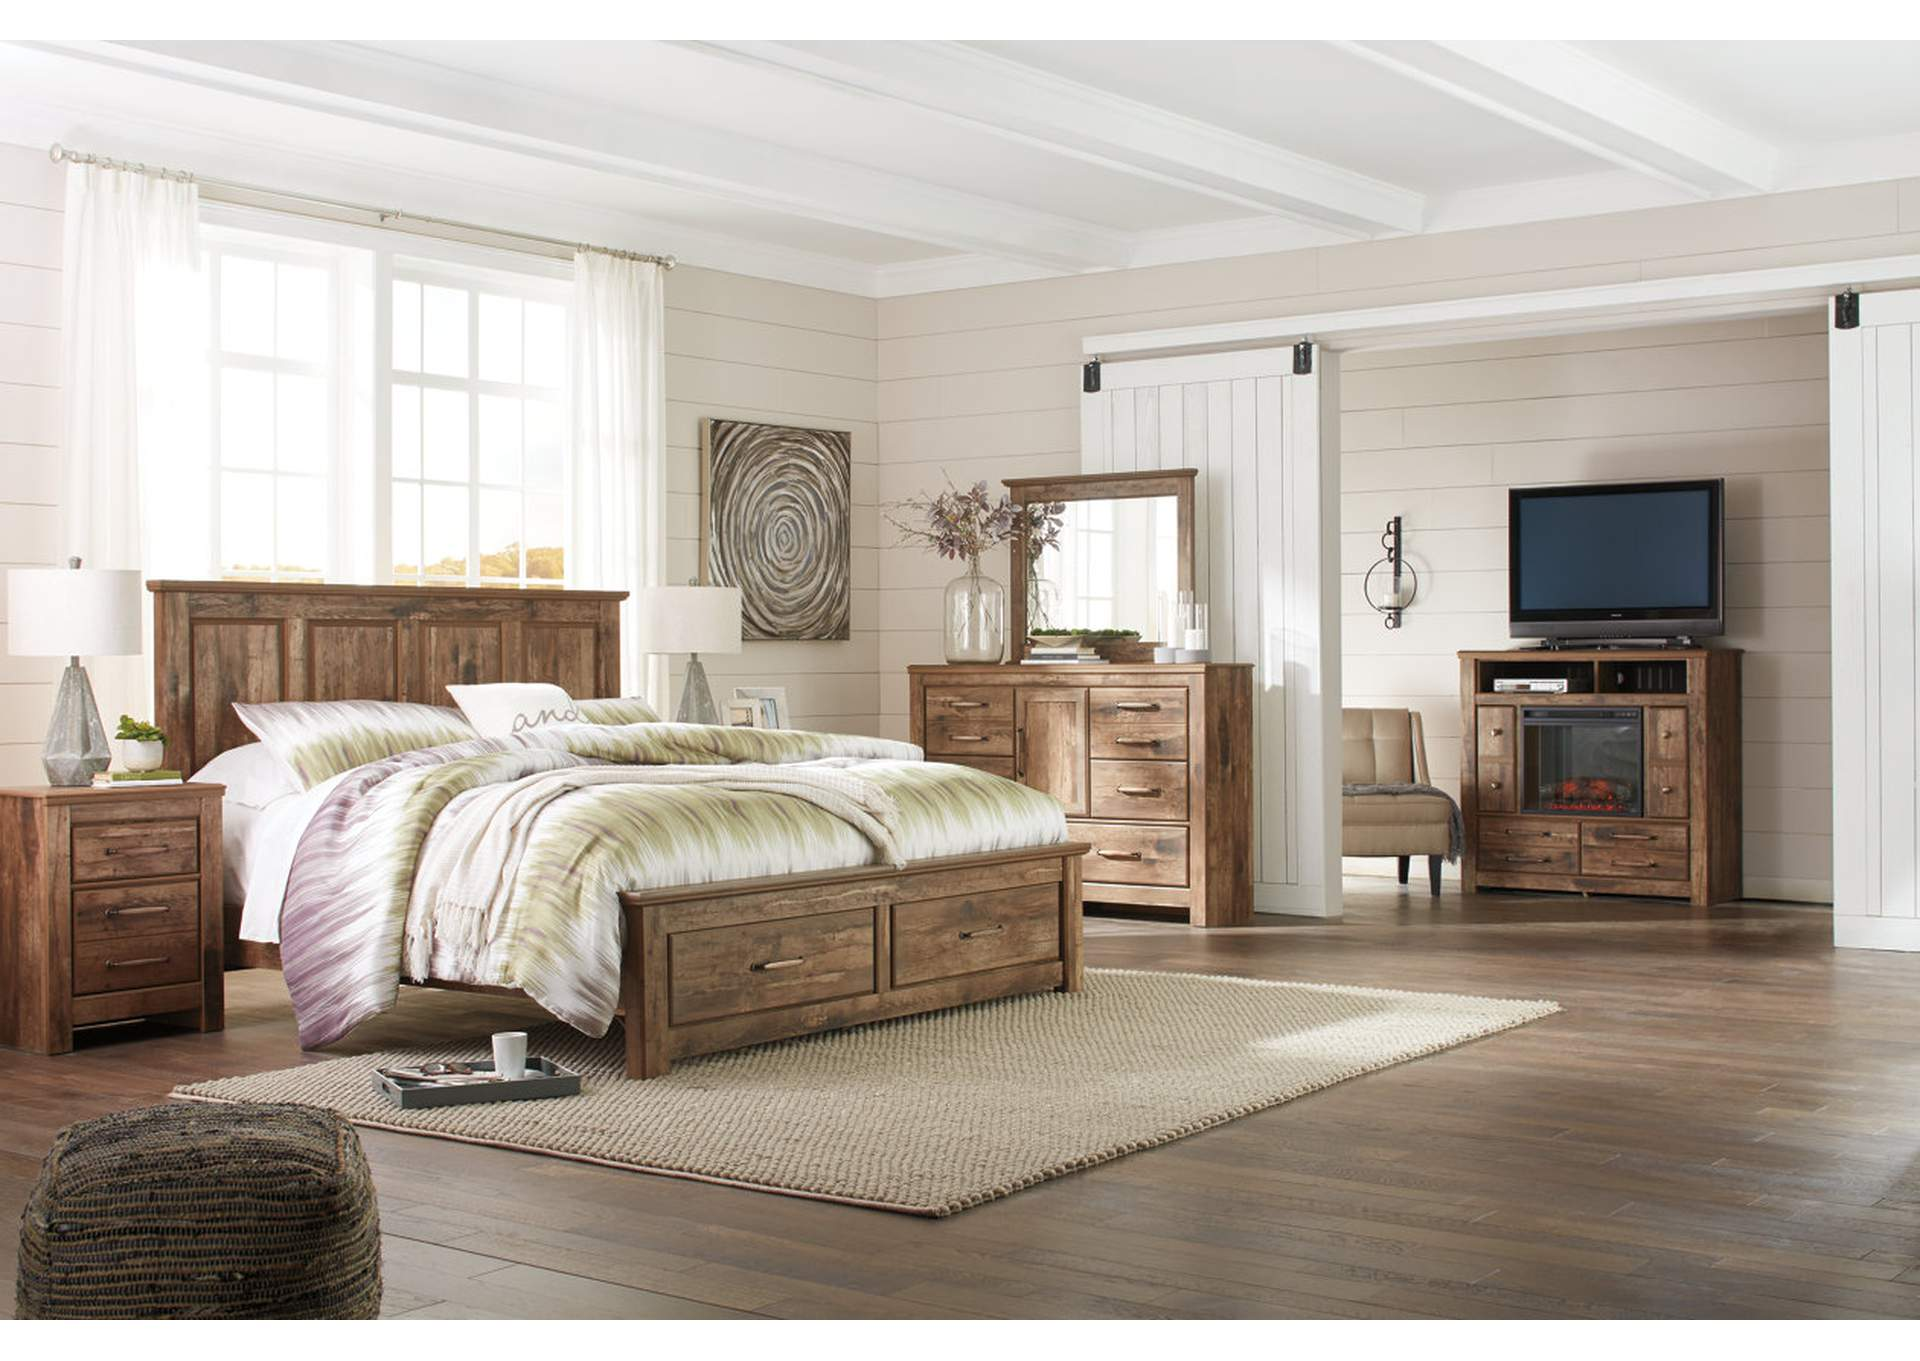 Blaneville Brown King Storage Platform Bed w/Dresser, Mirror, Drawer Chest & Nightstand,Signature Design By Ashley